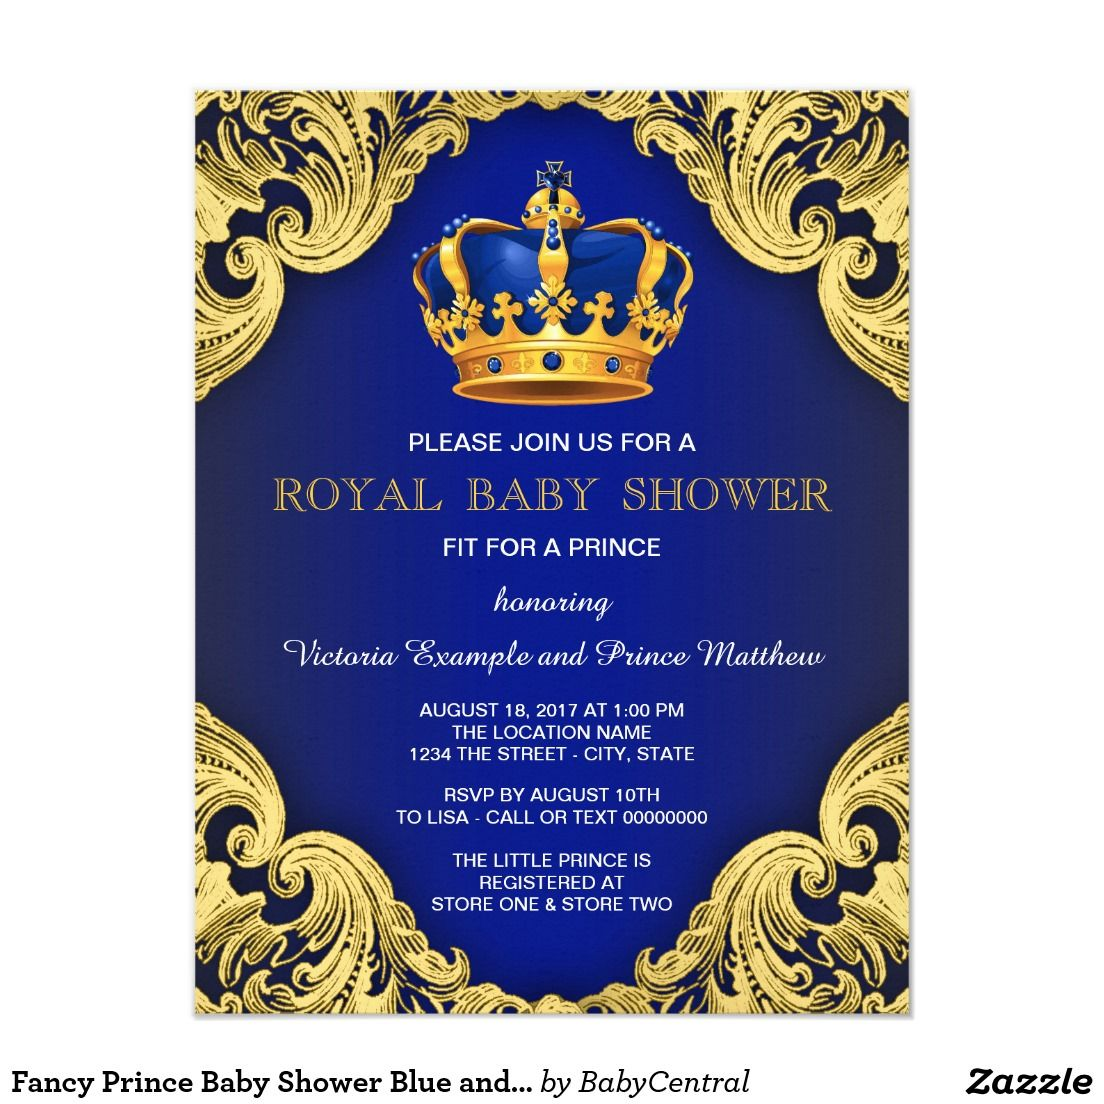 Fancy Prince Baby Shower Blue and Gold Invitation | Pinterest | Gold ...